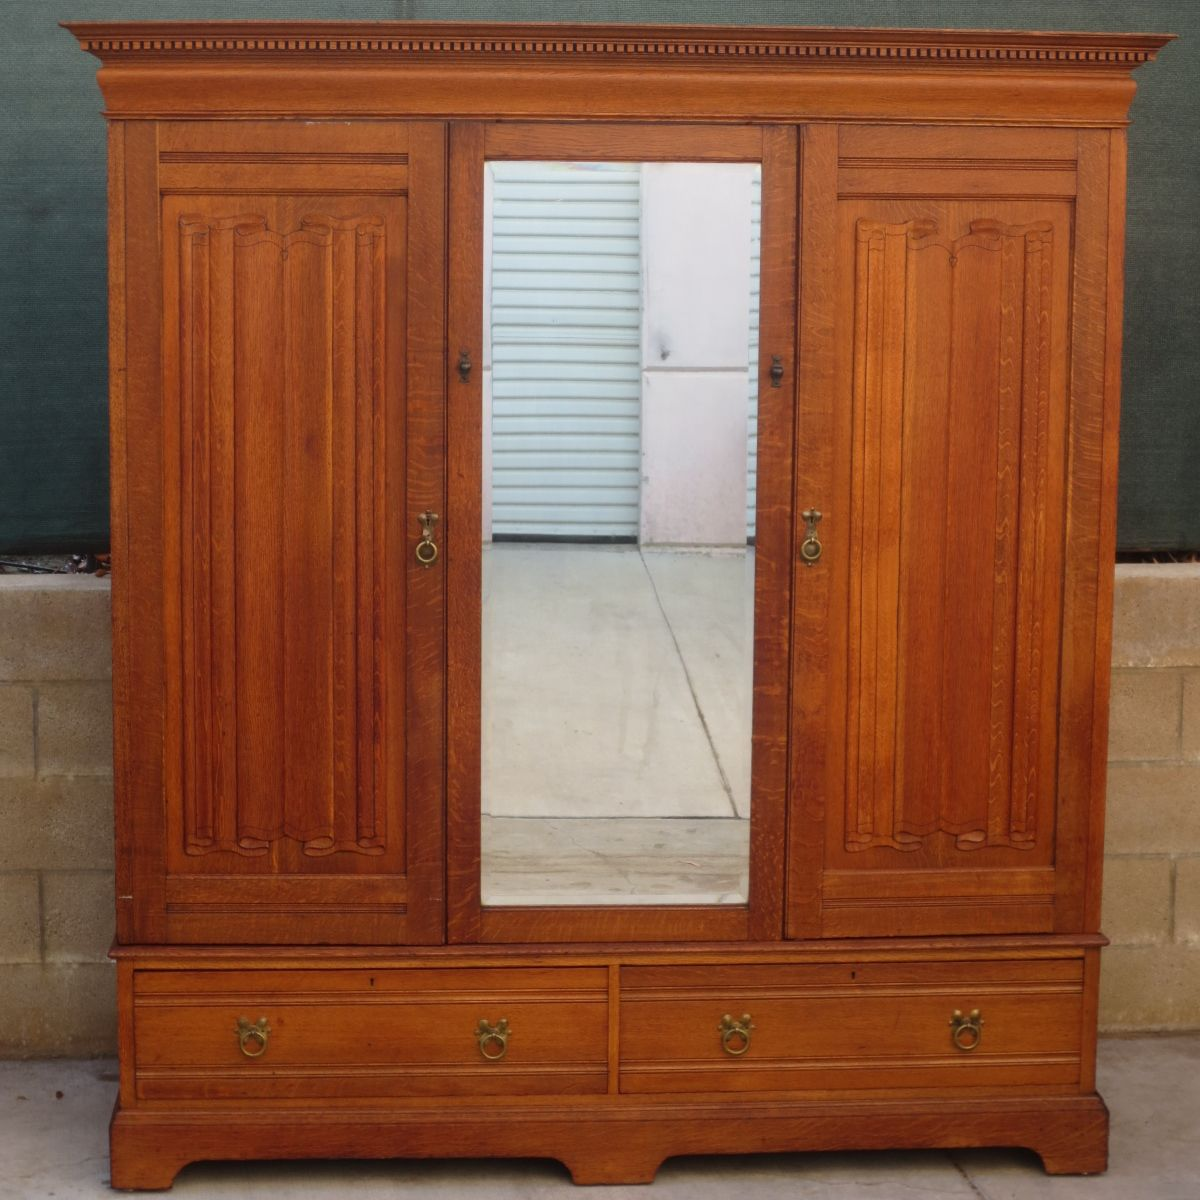 Charmant Antique Armoire Antique Wardrobe Antique Furniture Linen Fold Armoire